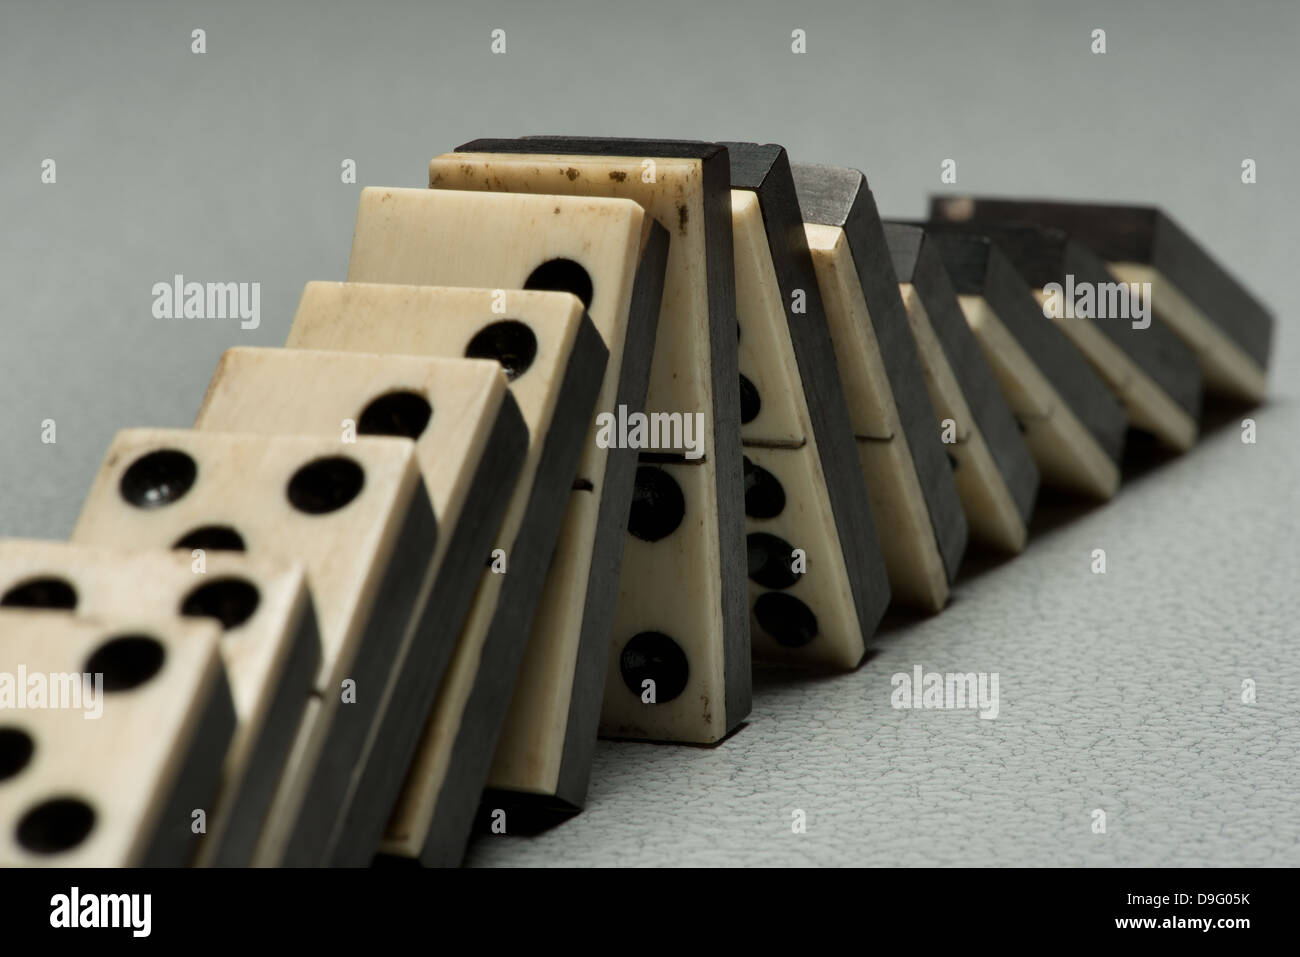 rows of lined up old ivory and ebony bronze pinned standing domino